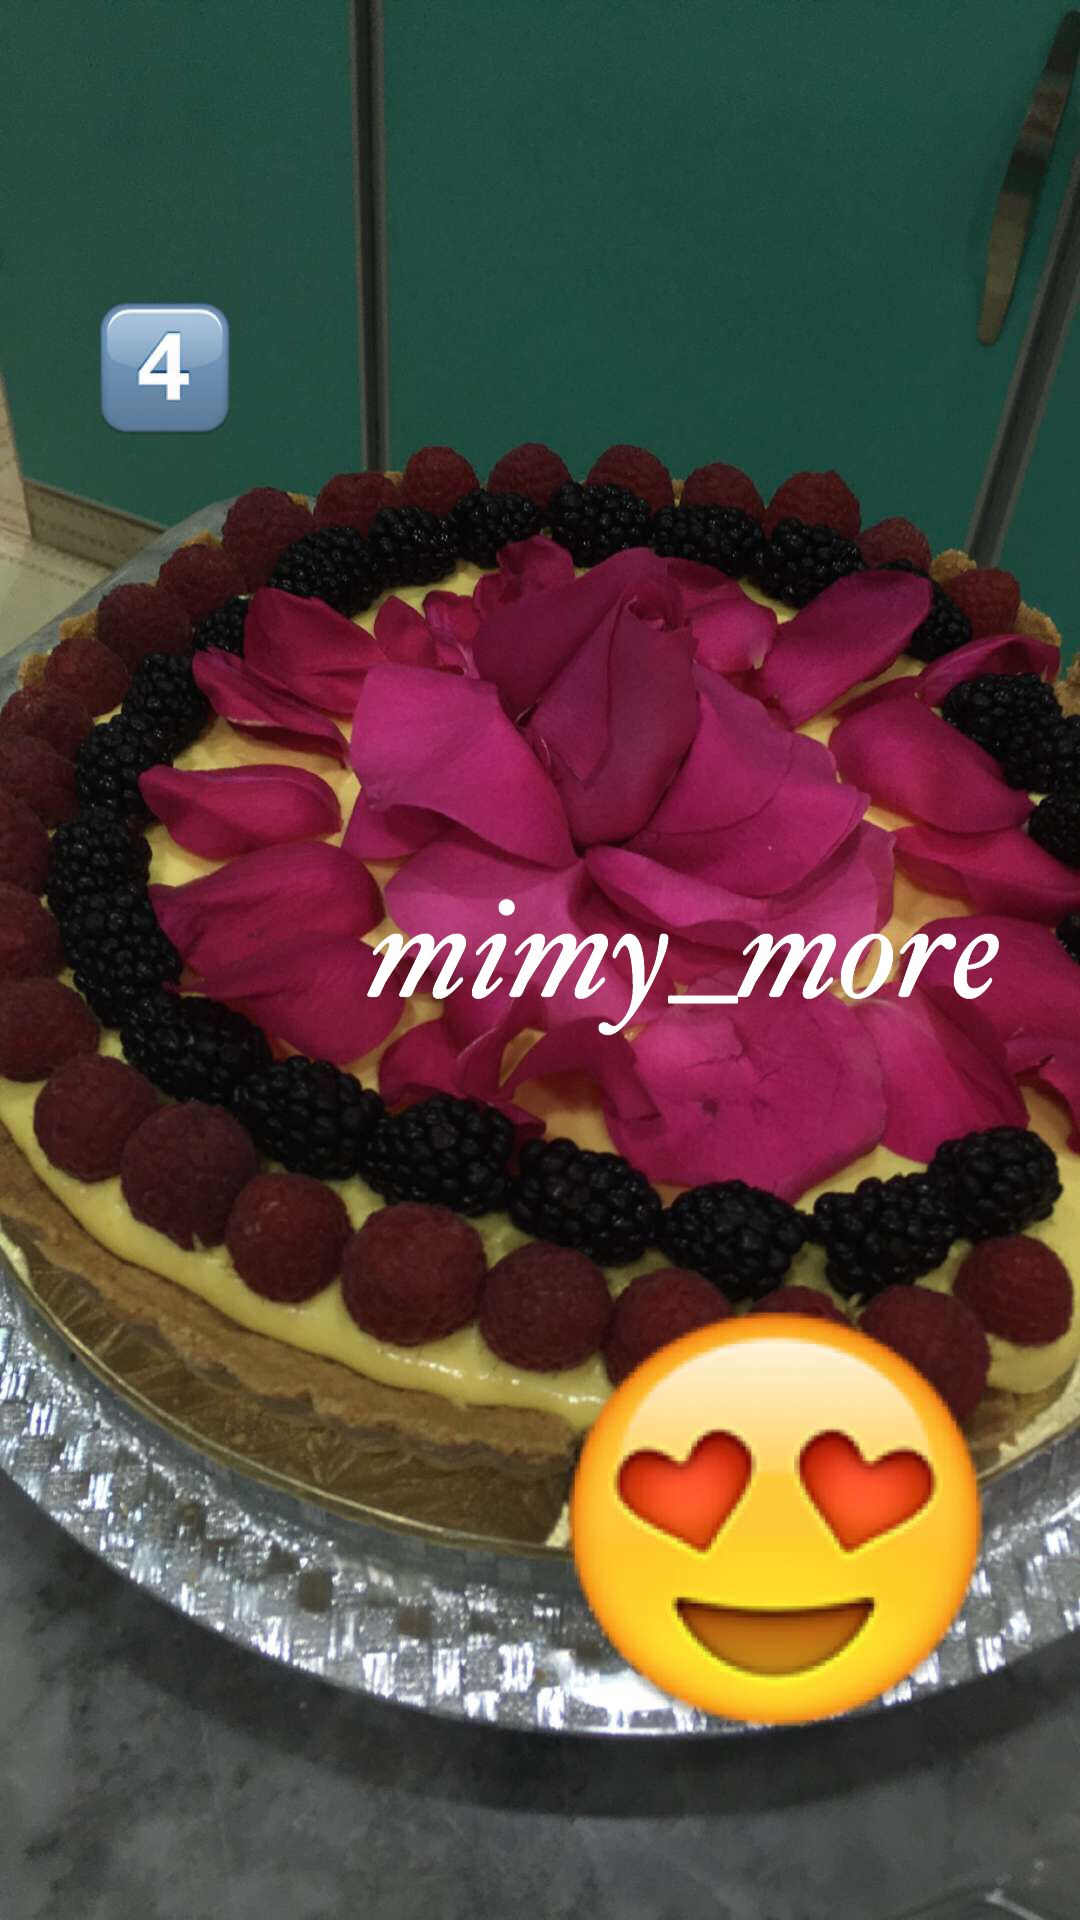 mimy_more